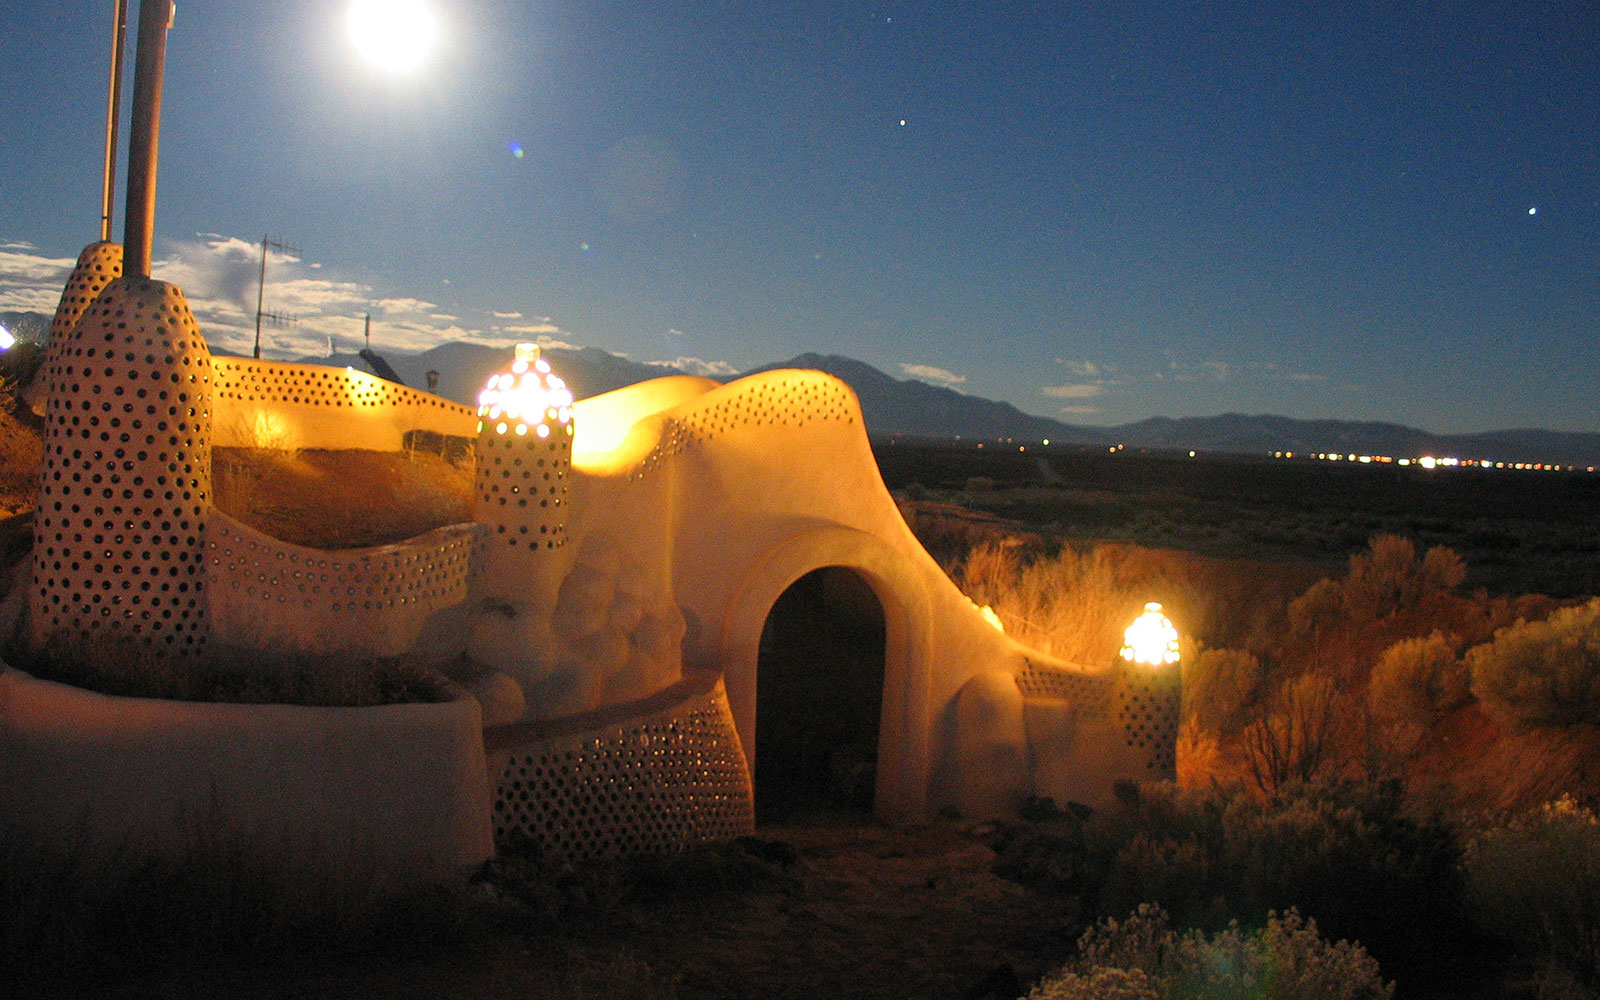 Earthship Biotecture unique hotel in Tres Piedras, New Mexico